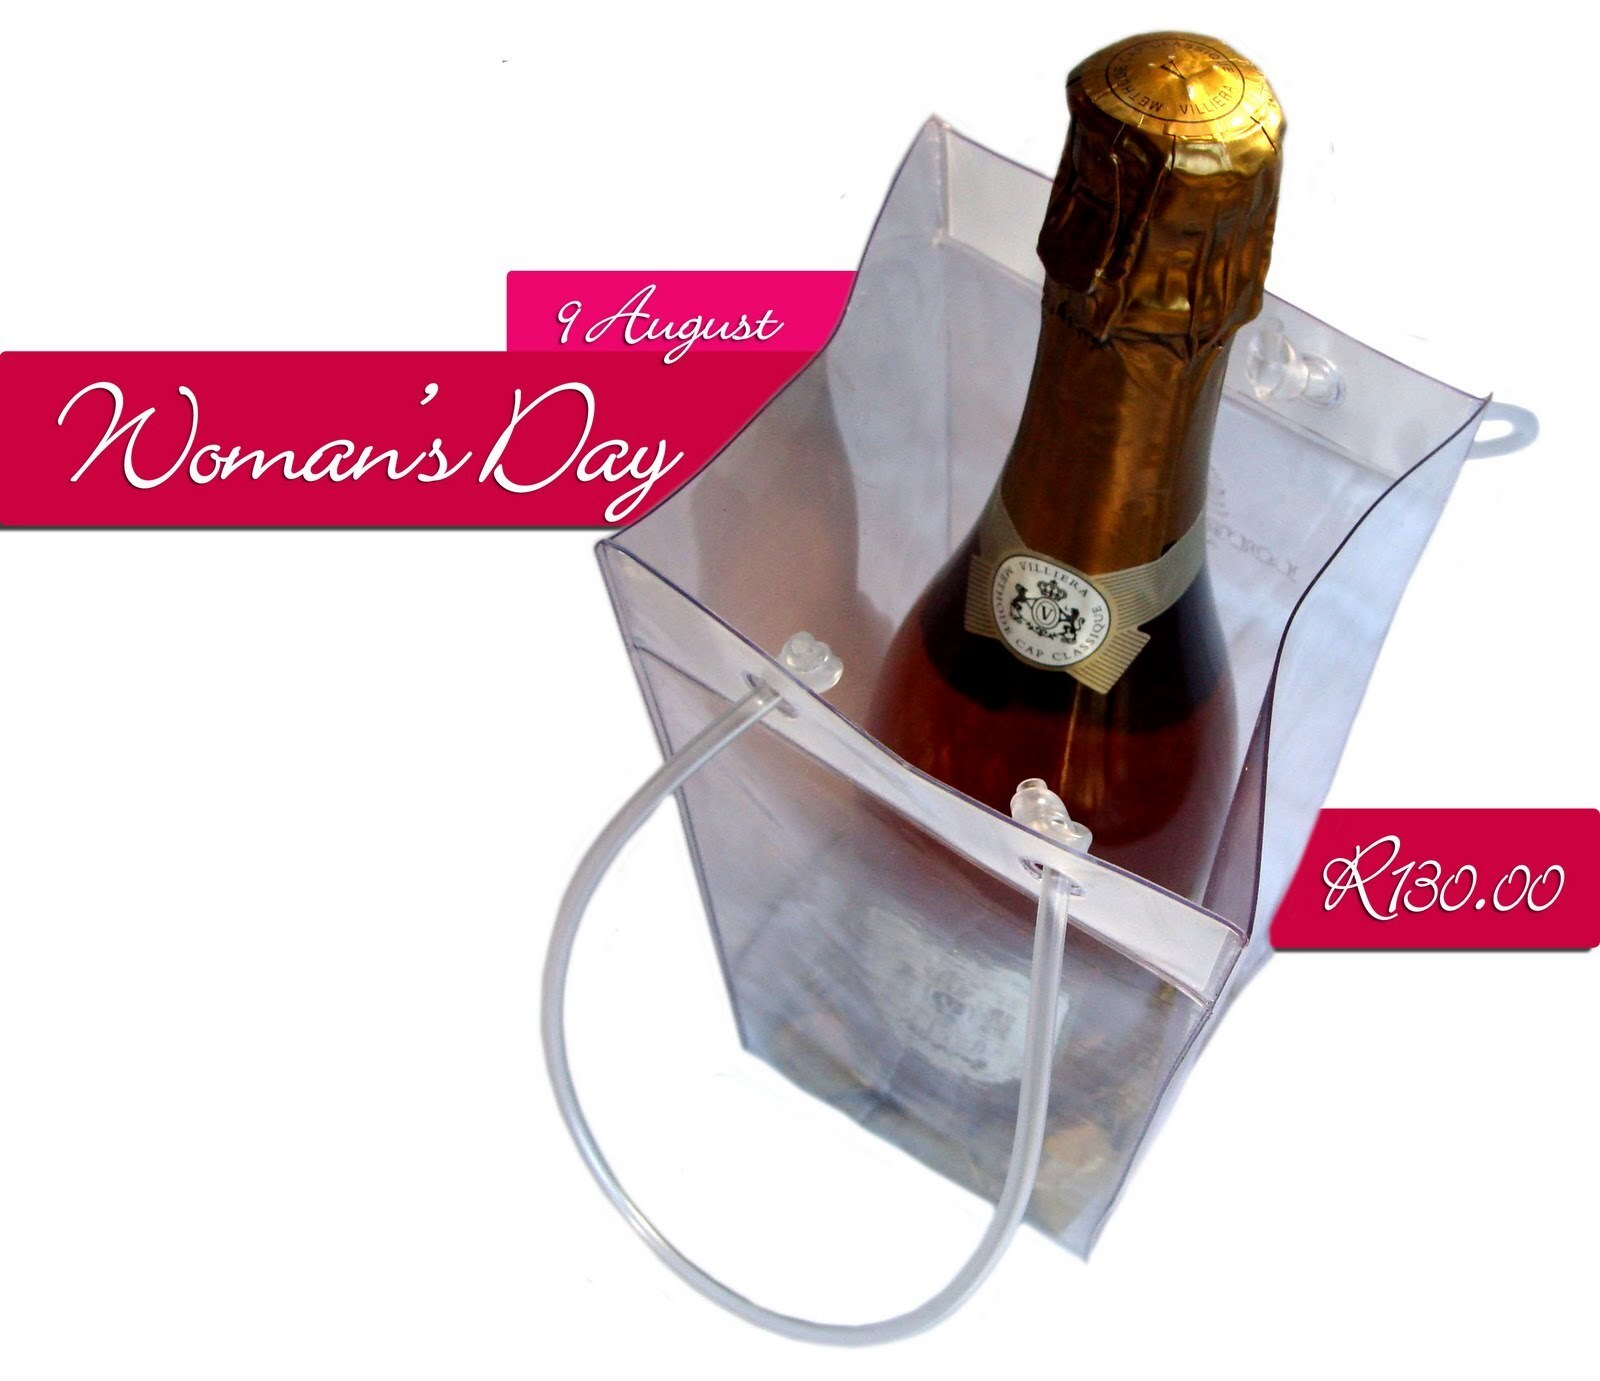 Celebrate Woman's Day with Pink Bubbly